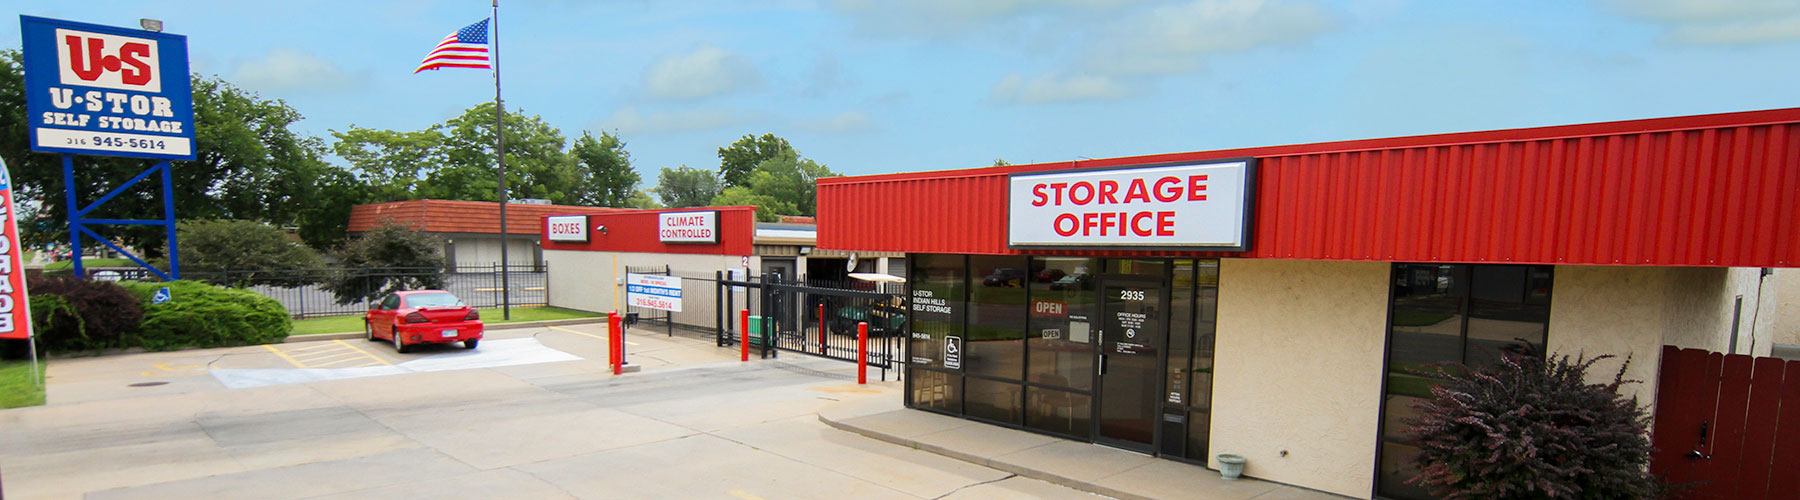 U-STOR Indian Hills is located at 2935 West 13th St, Wichita, KS. Call 316-462-2505 for information.